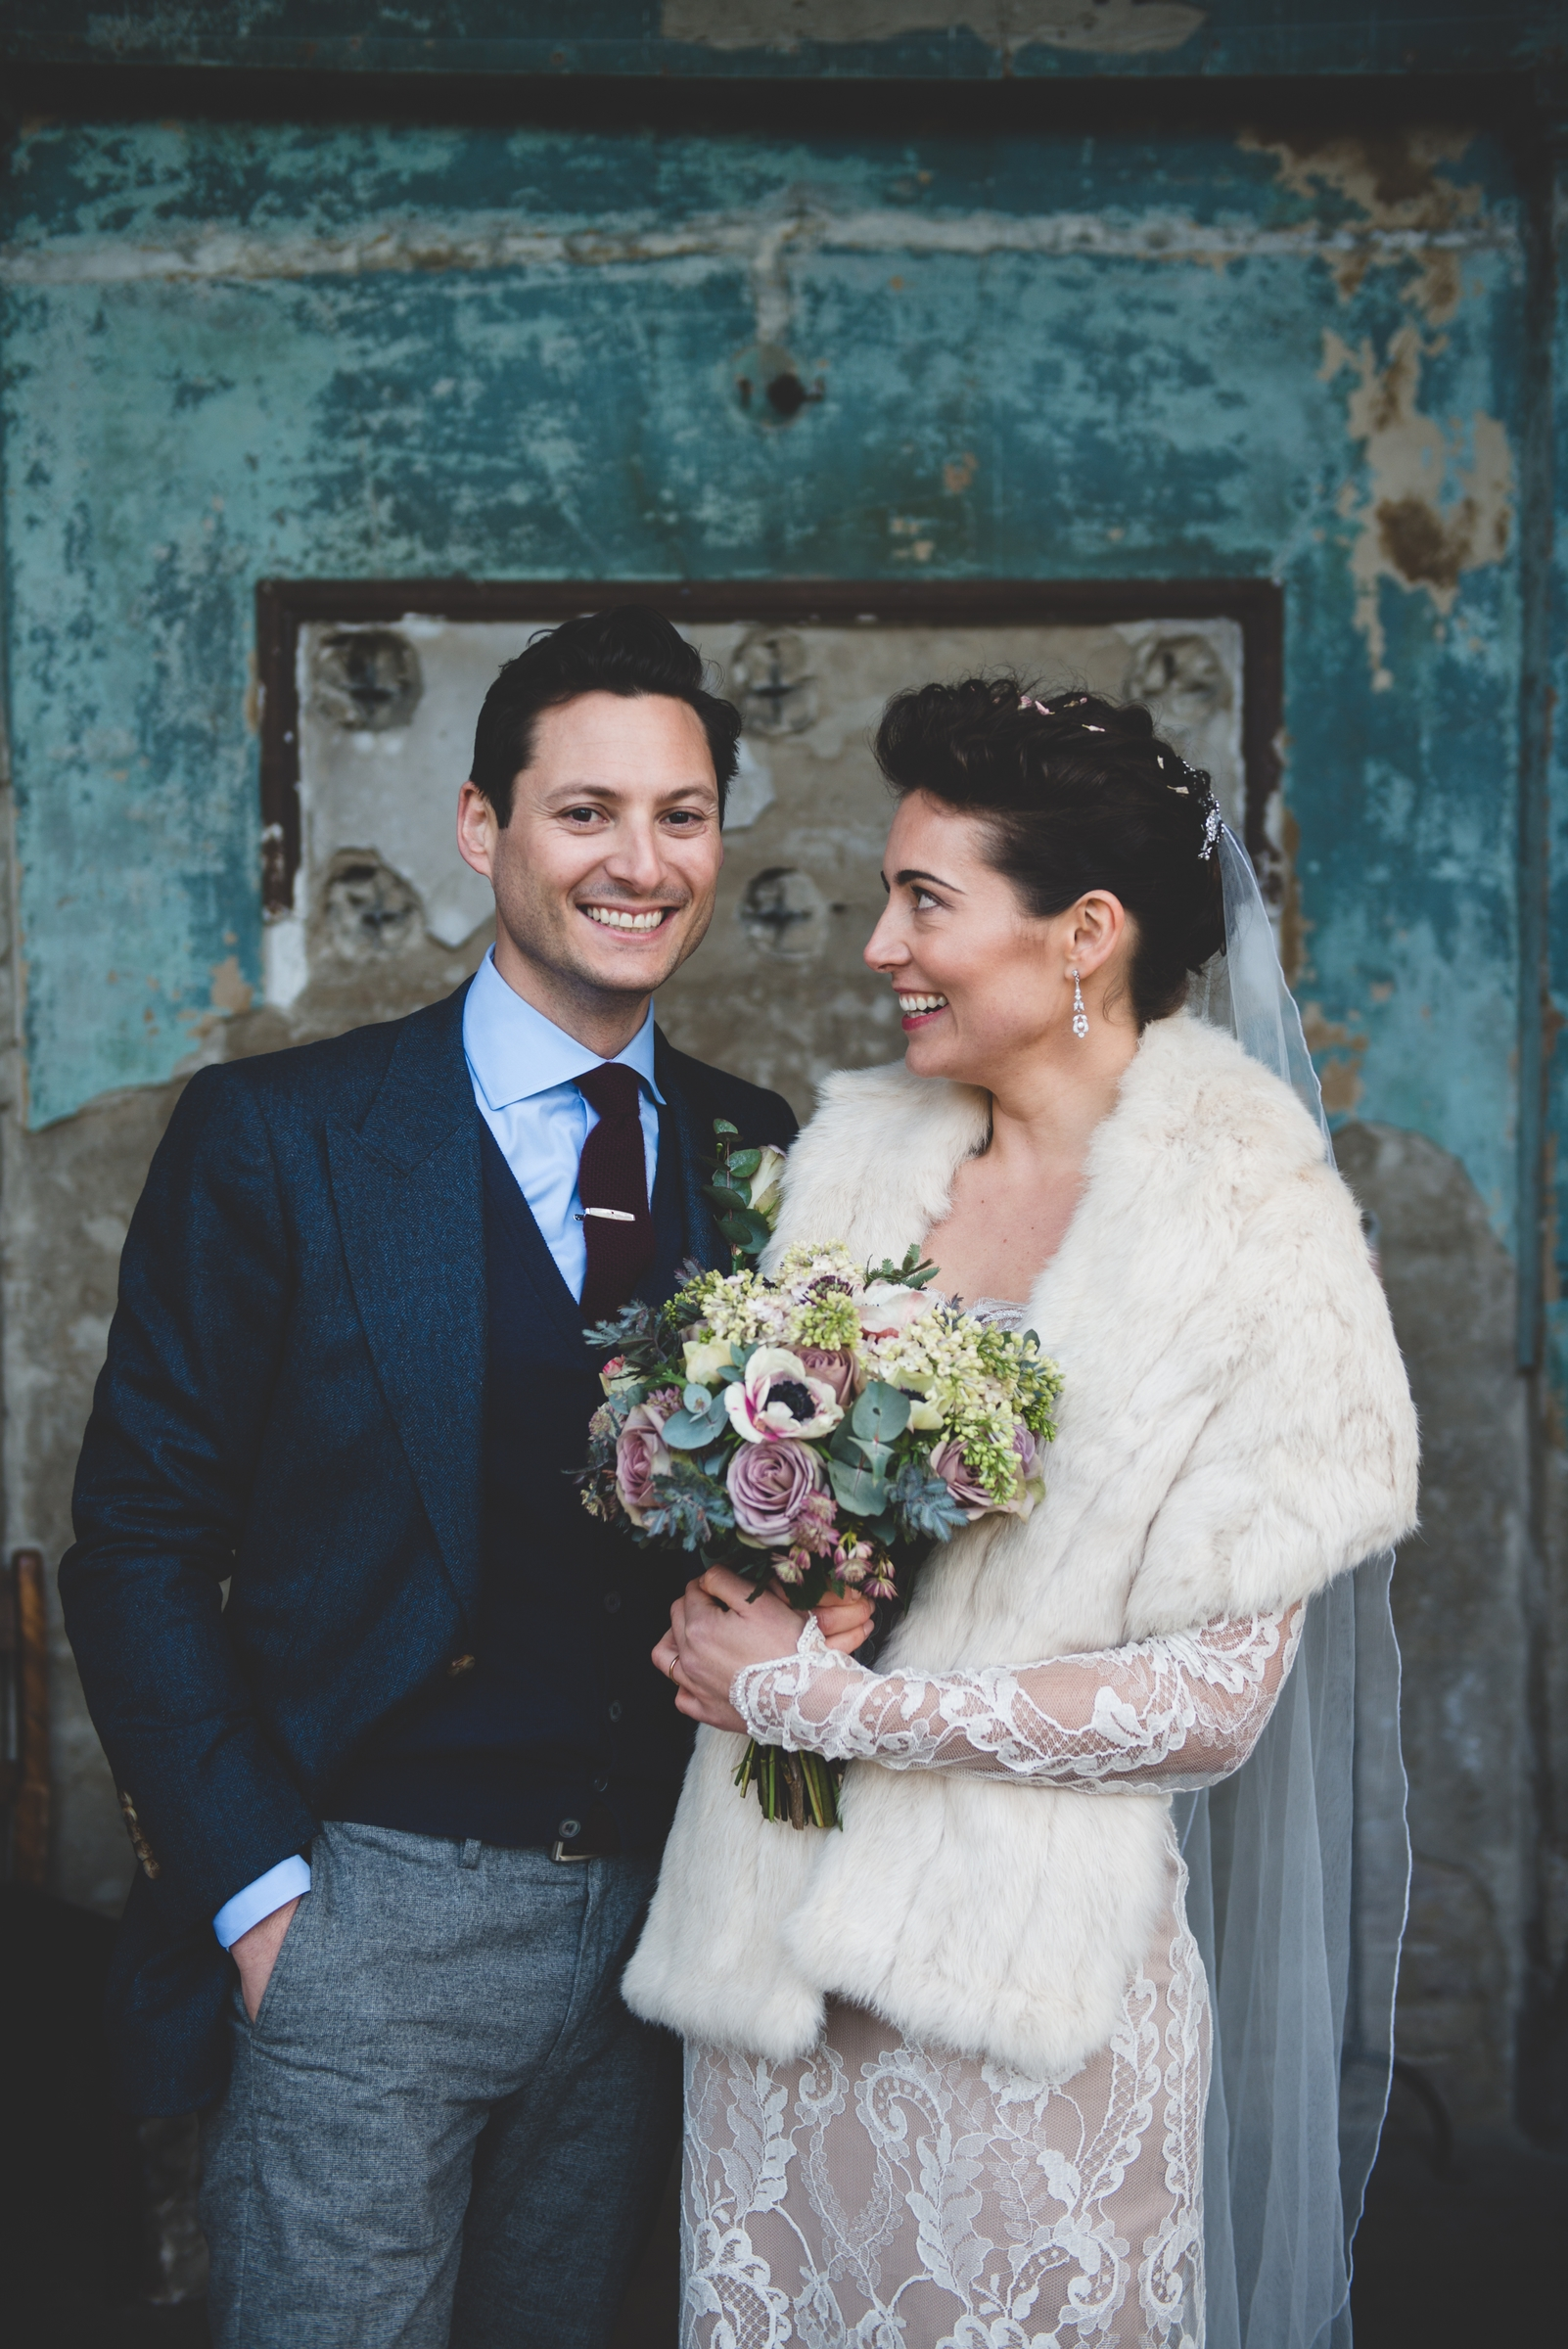 Daisy & Danny, Winter wedding    - Dave Watts Photography